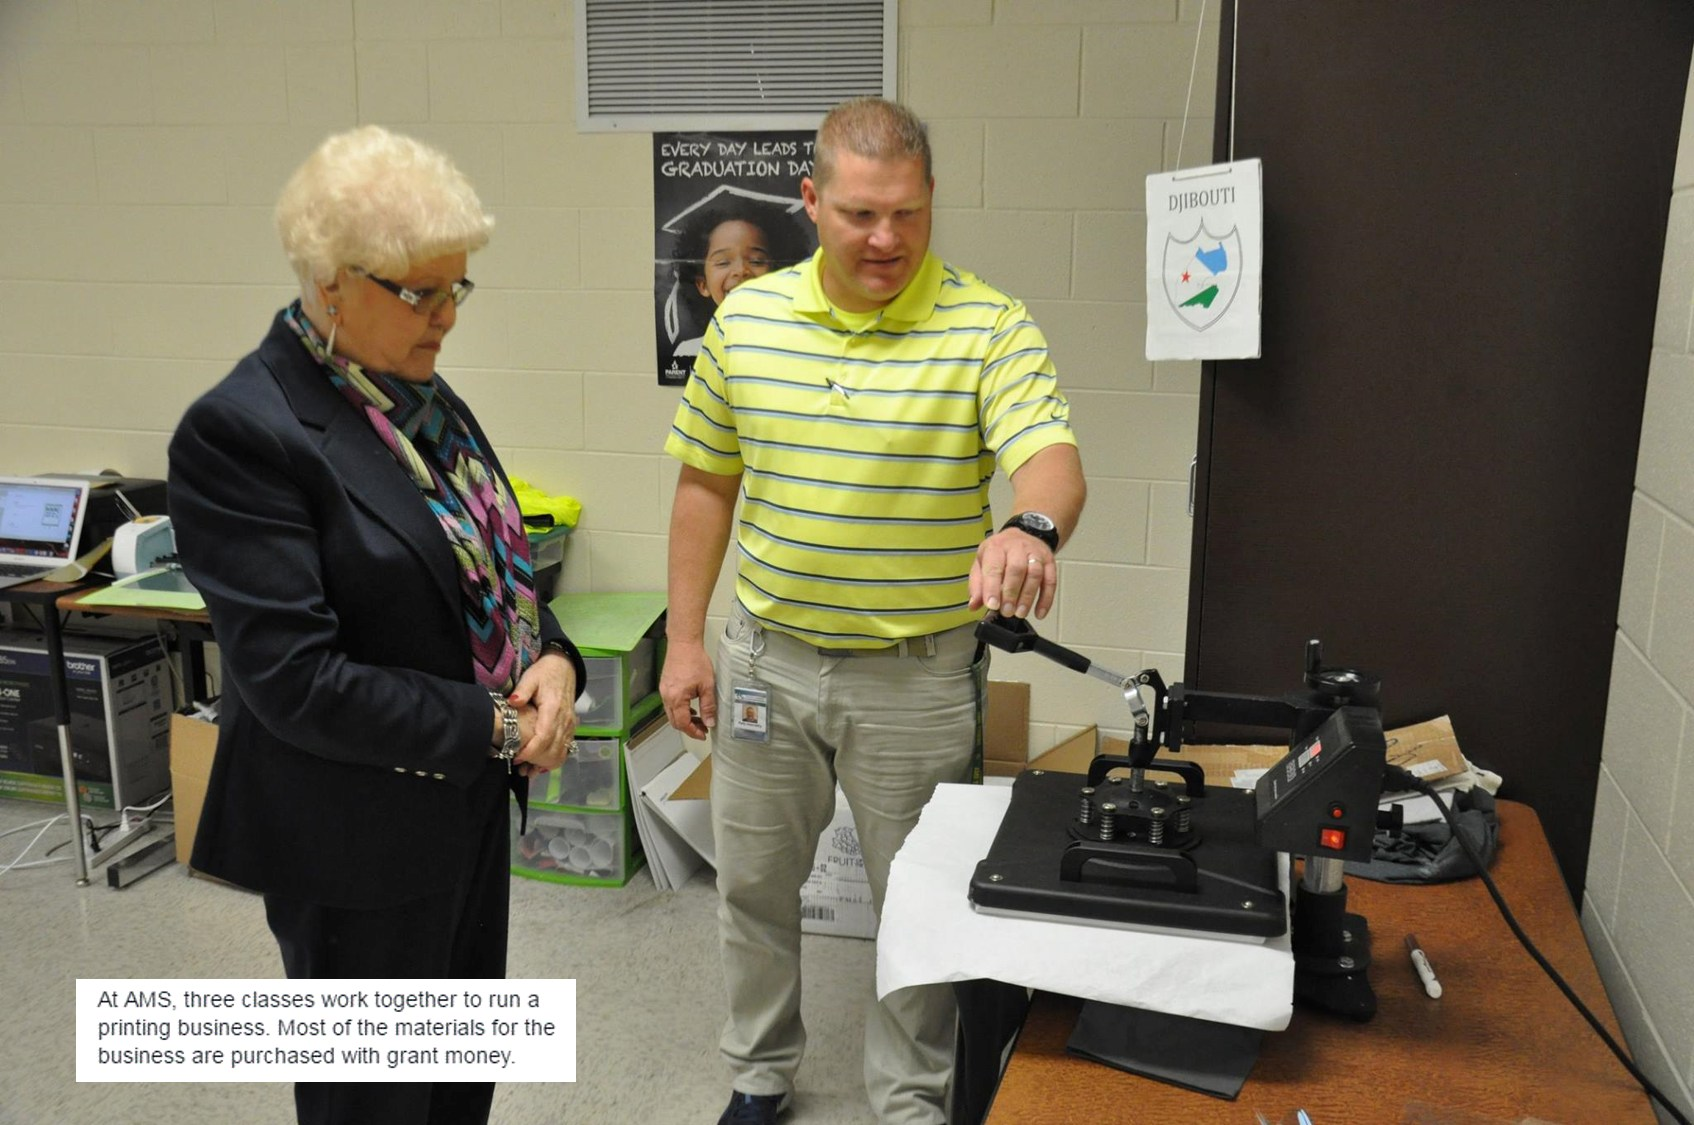 AMS purchases items for working print shop